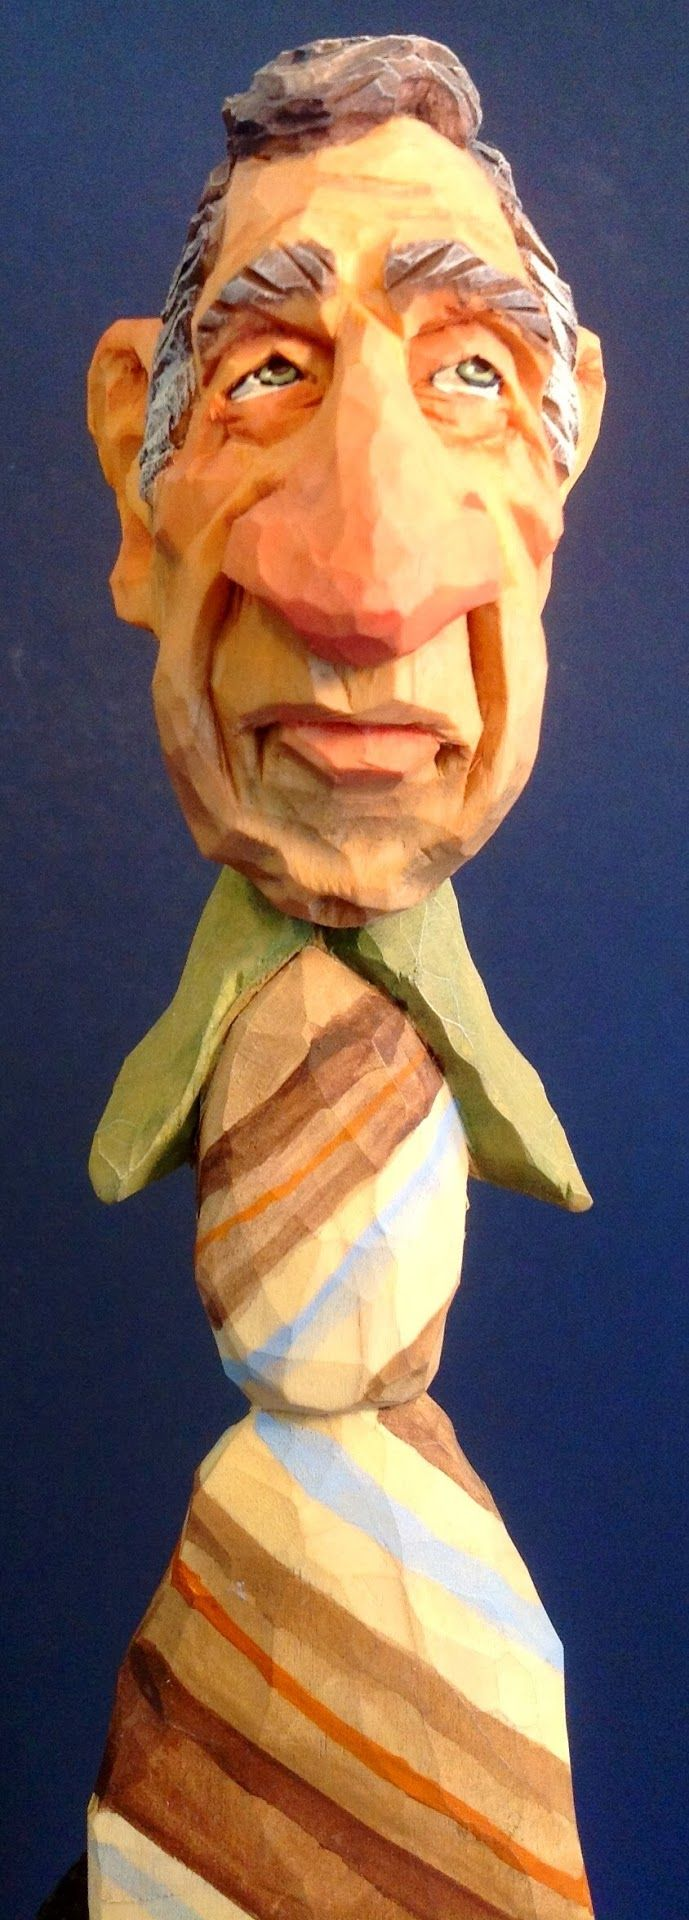 Google caricature woodcarving pinterest photos and app